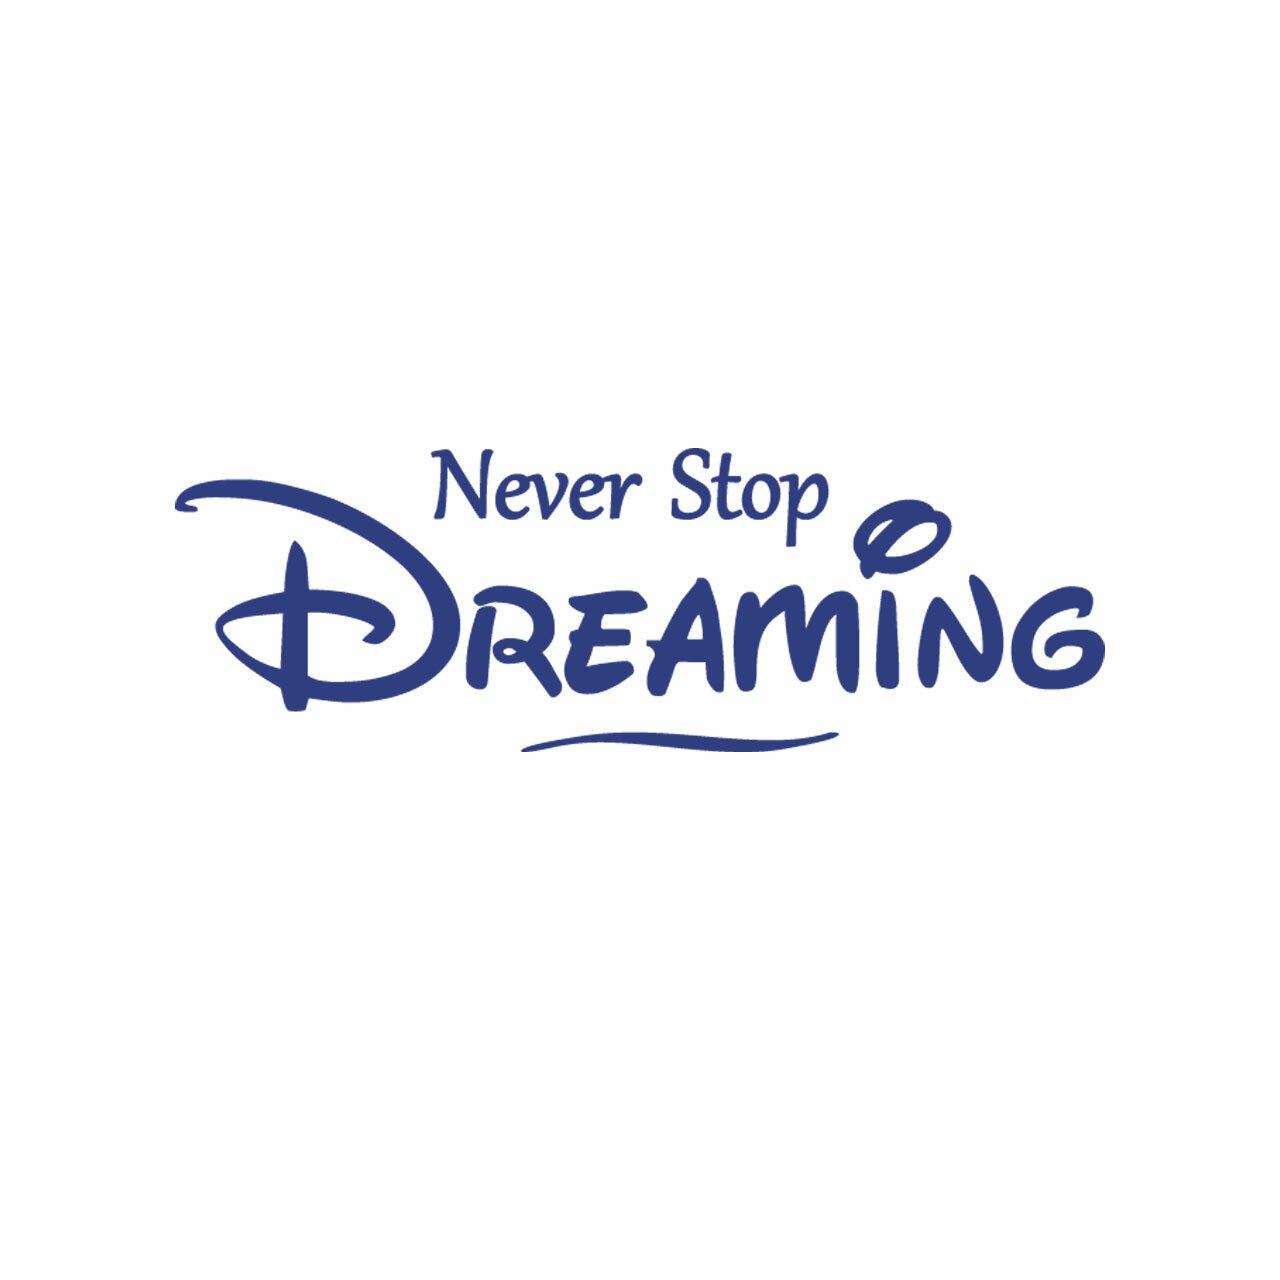 Never stop dreaming vinyl lettering layout in blue on a white background